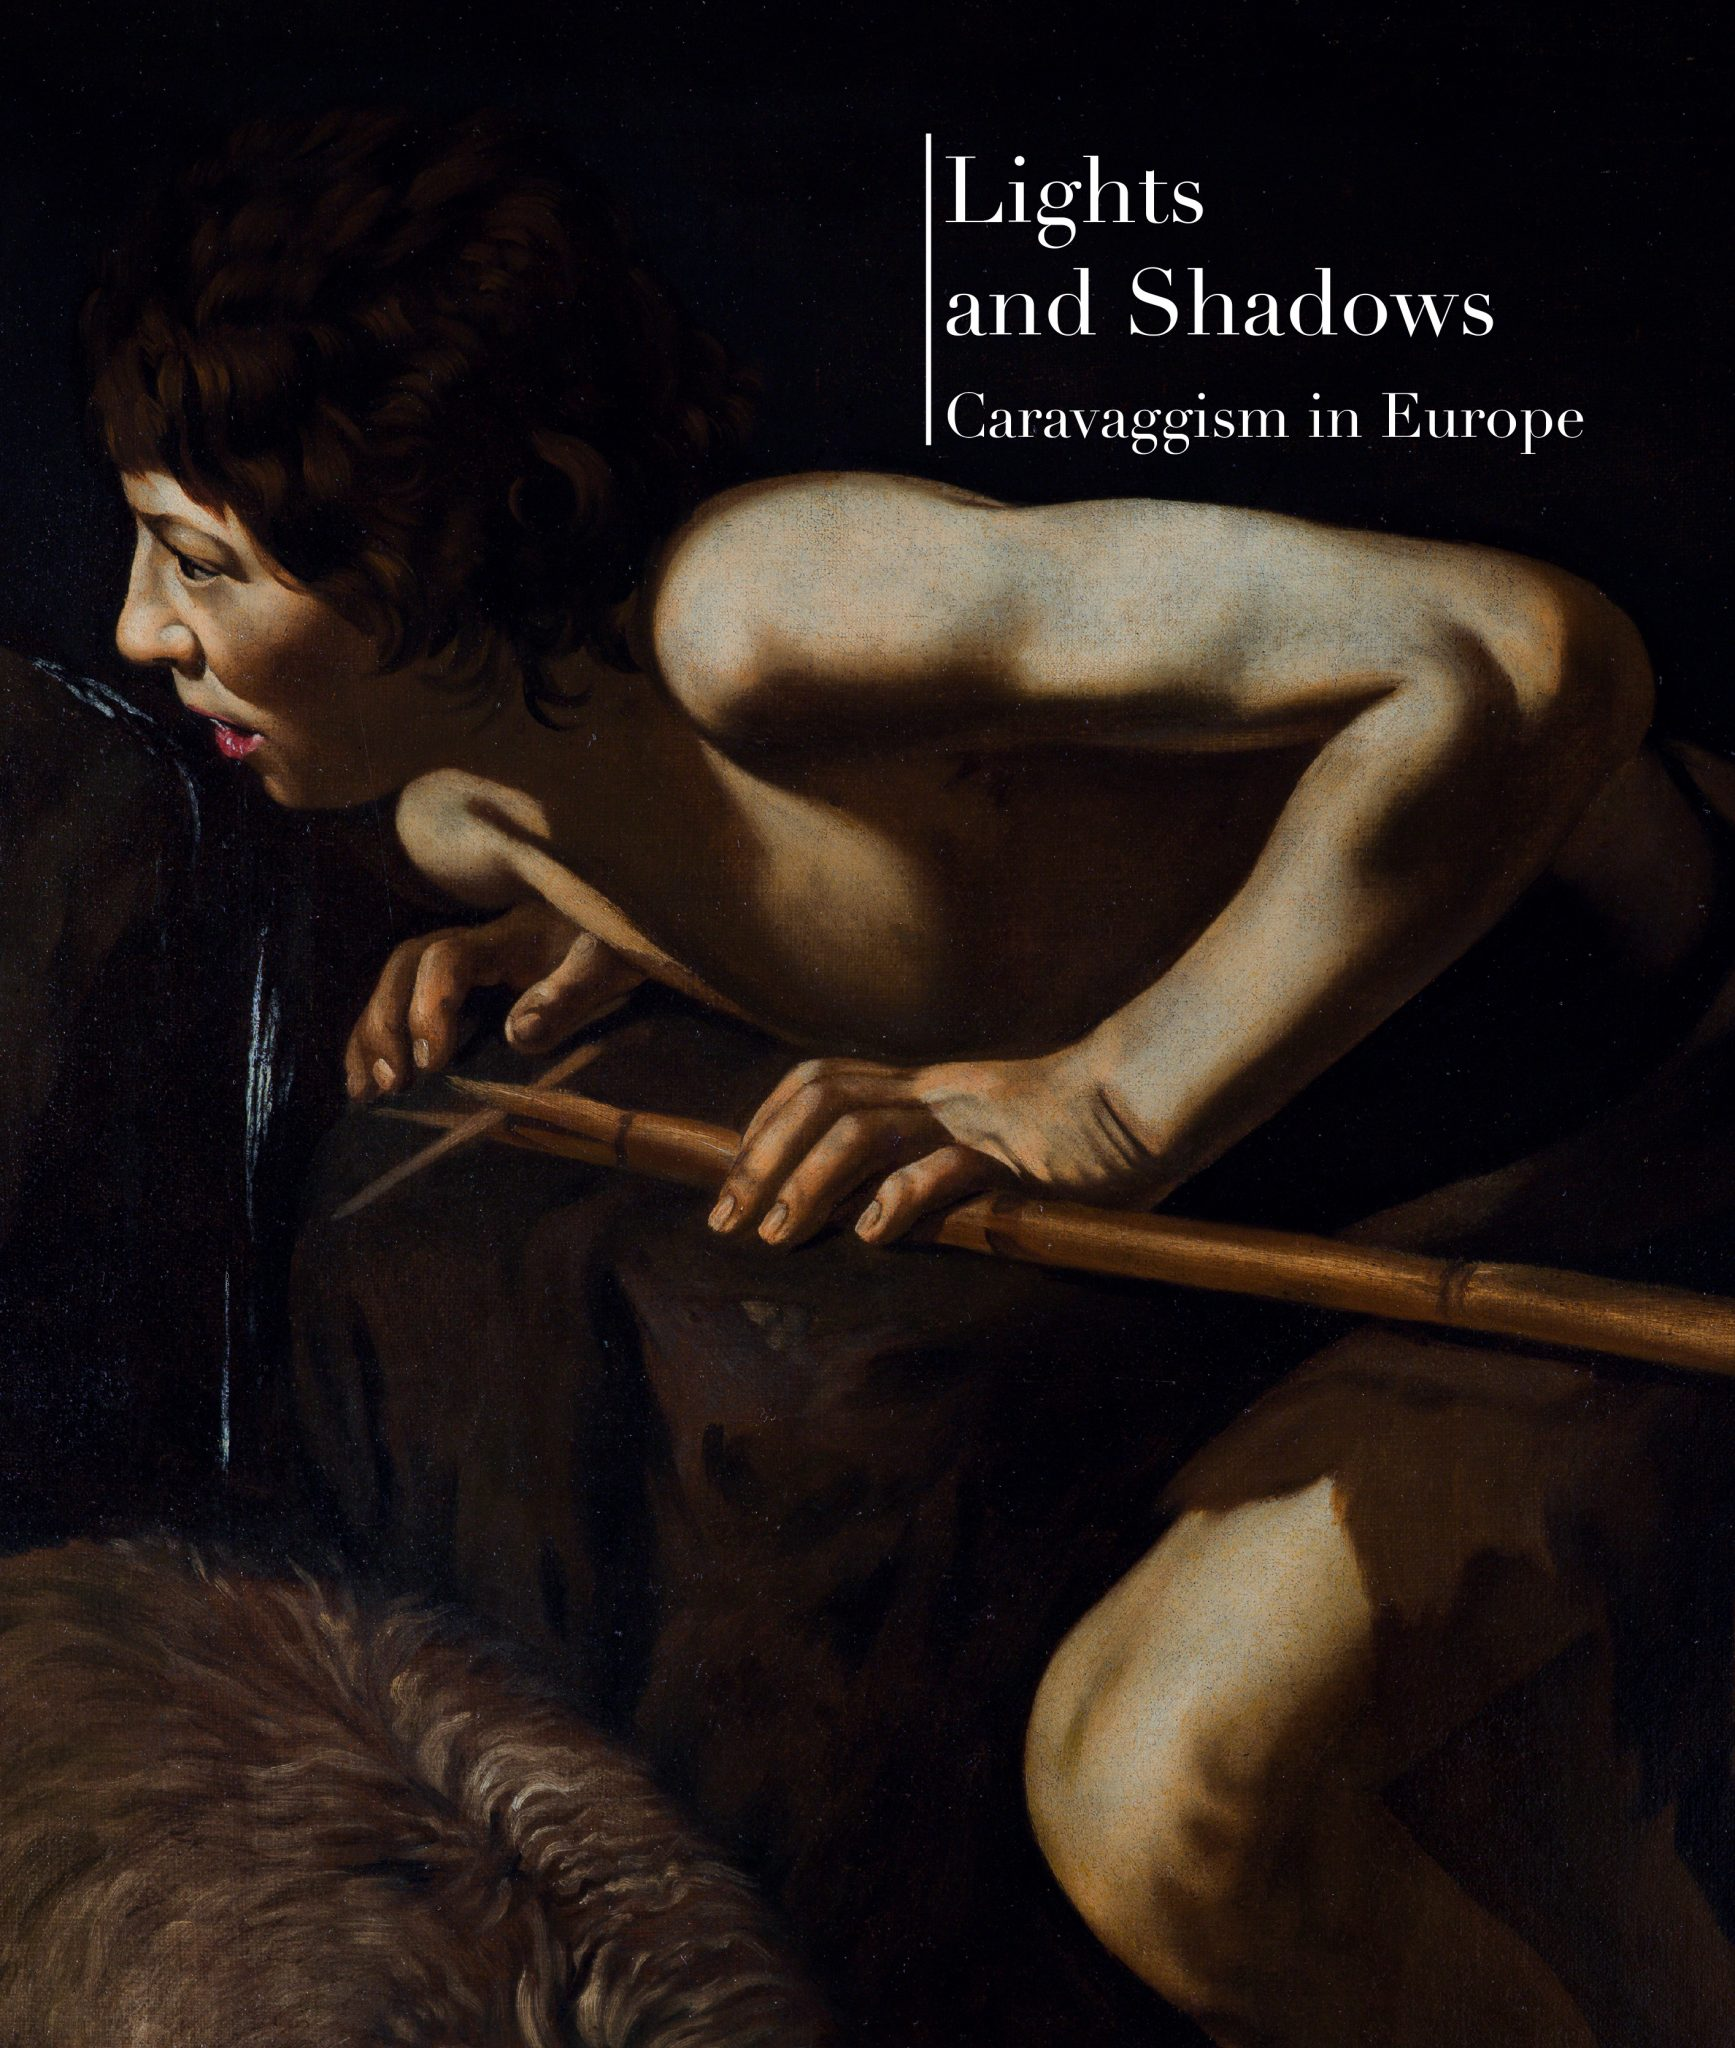 Lights and Shadows: Caravaggism in Europe    London, June 29th - July 31st 2015